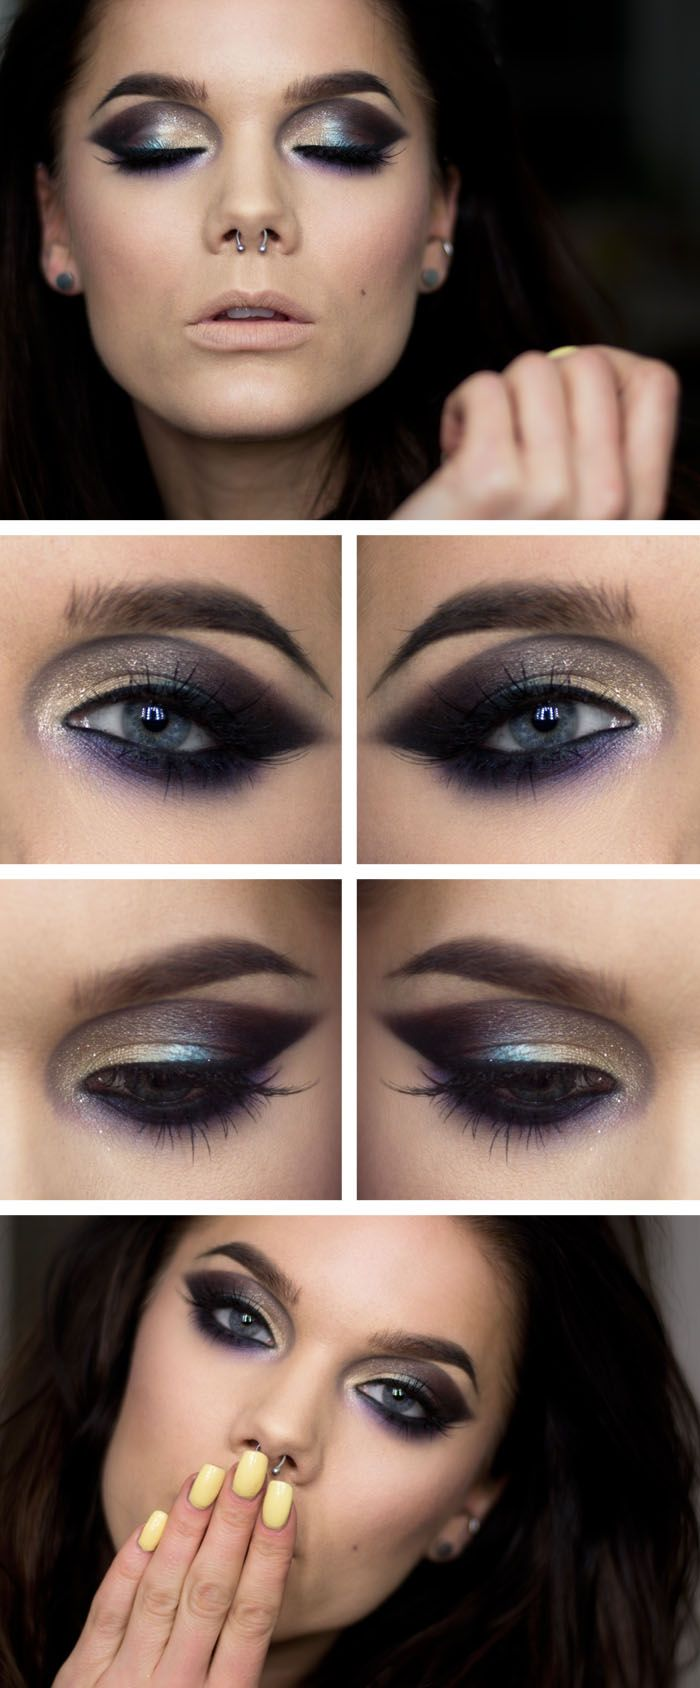 Follow through ♥ Linda Hallberg - incredible makeup artist. Very inspiring -- from her daily makeup blog. | Inspiration for upcoming projects by Adagio Images at www.adagio-images.com/modeling or www.facebook.com/adagioimages | #makeup #makeupinspiration ♥